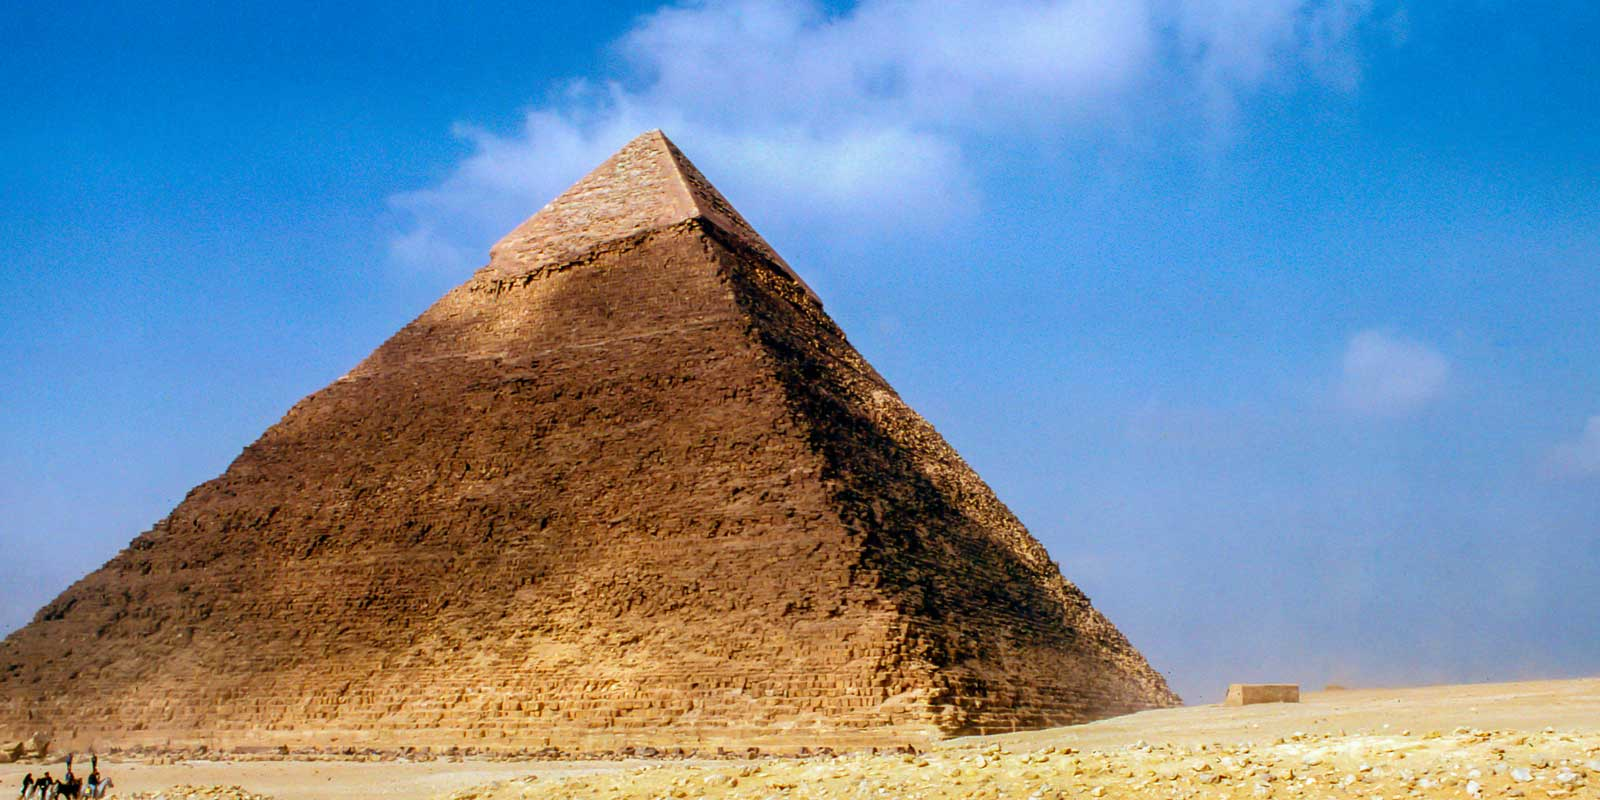 Great Pyramid in Egypt against a bright blue sky.